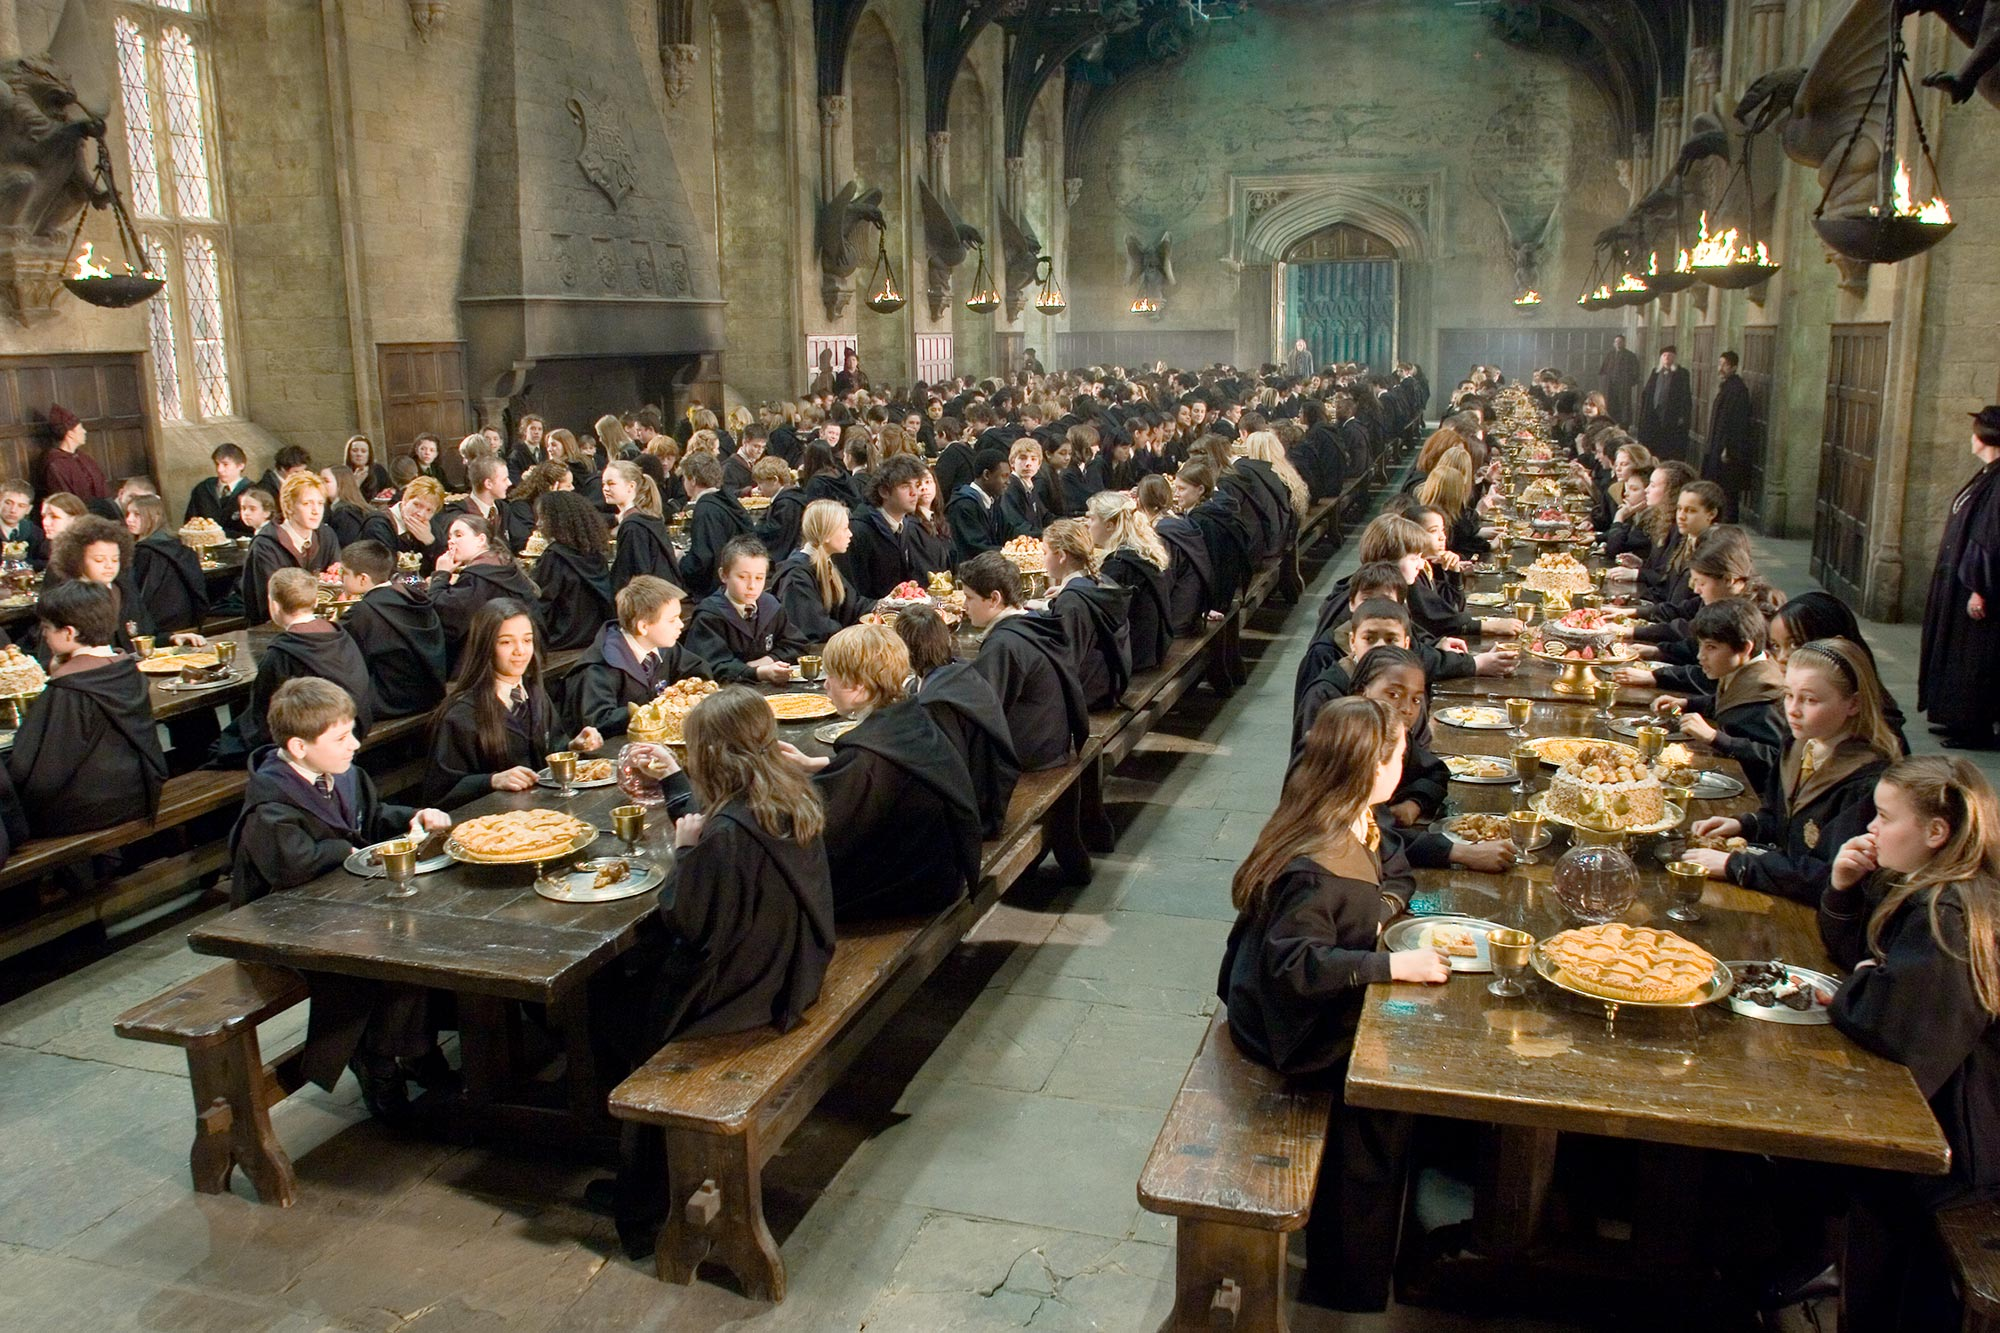 Harry Potter- the Great Hall of Hogwarts Castle